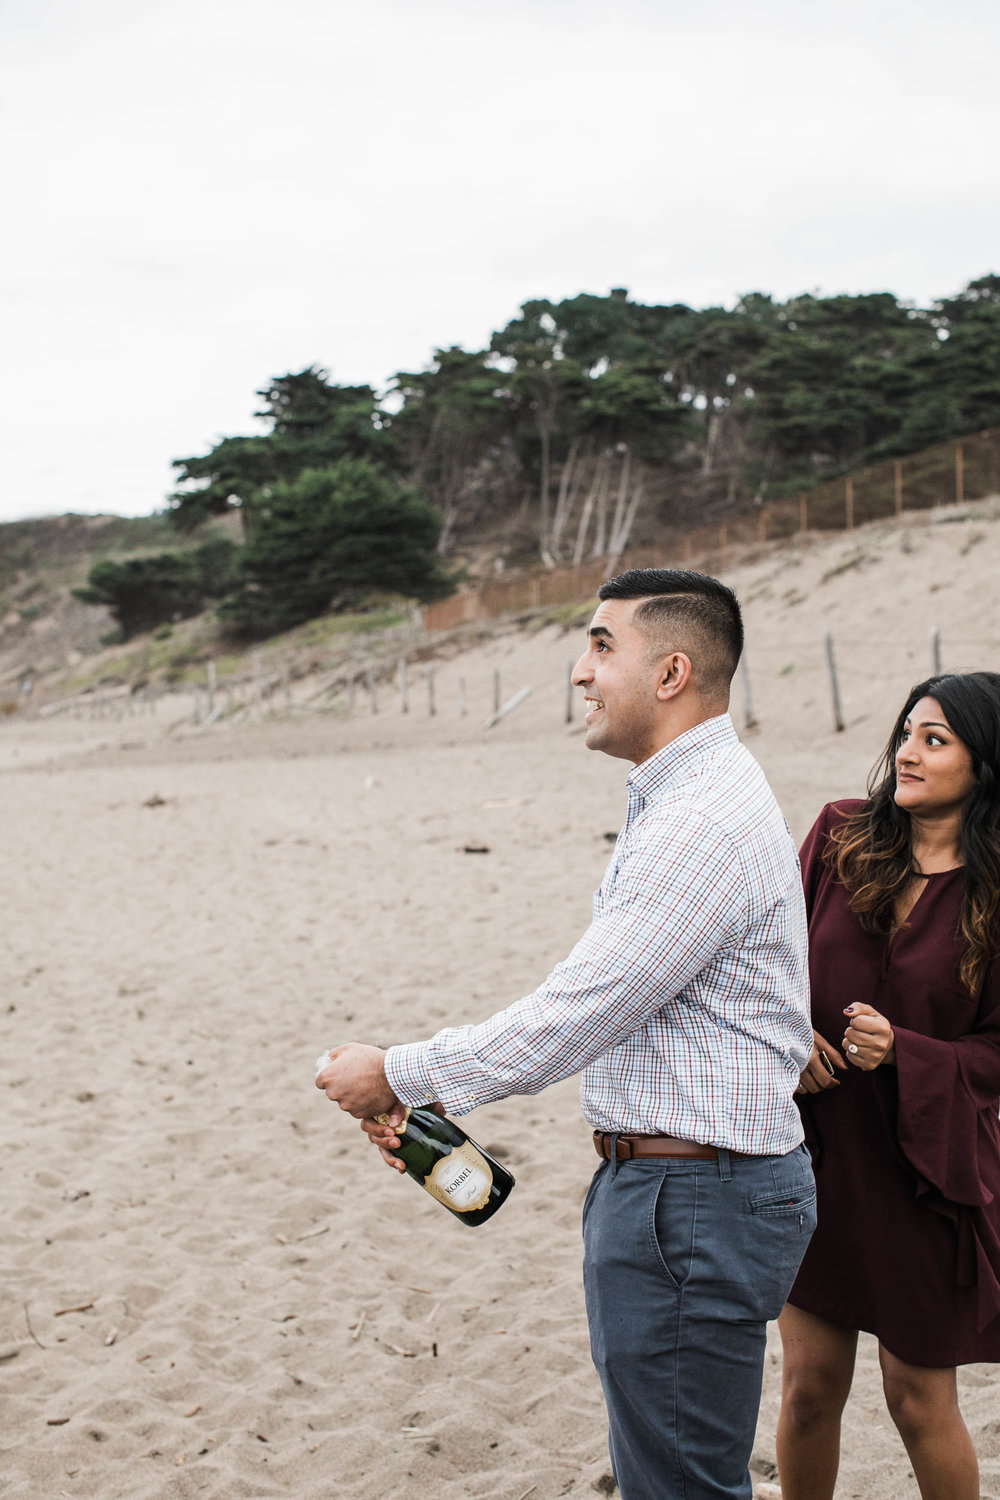 112017_D+S Proposal_Baker Beach_Buena Lane Photography_338.jpg